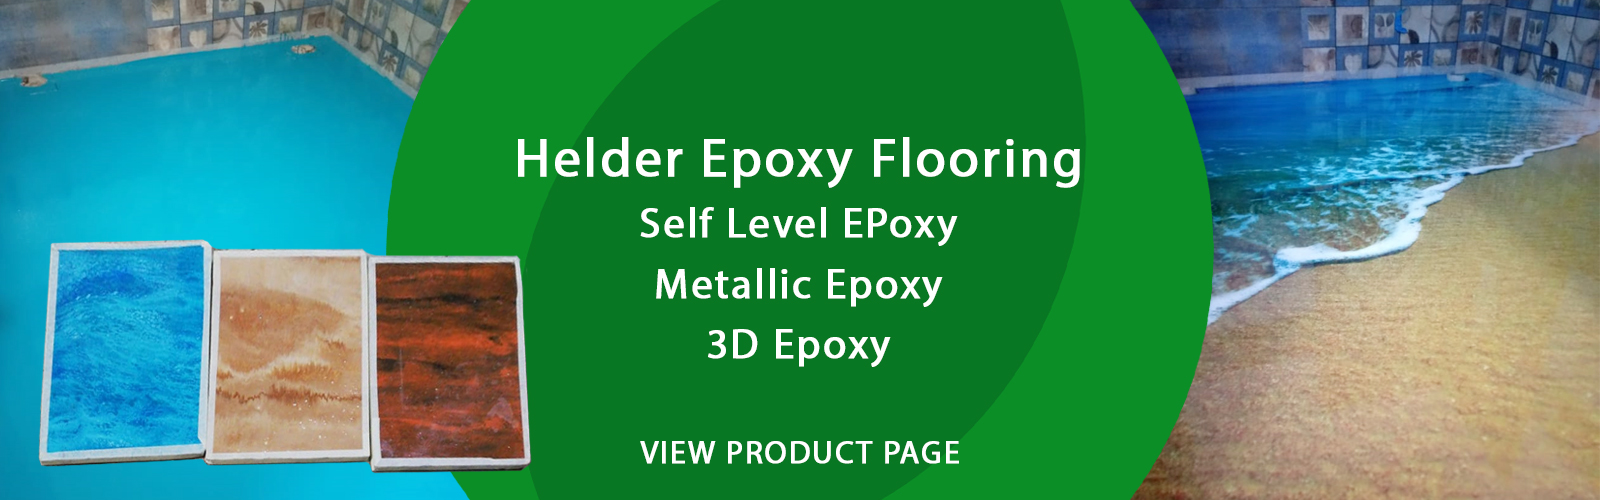 Visit Epoxy Flooring Product Page